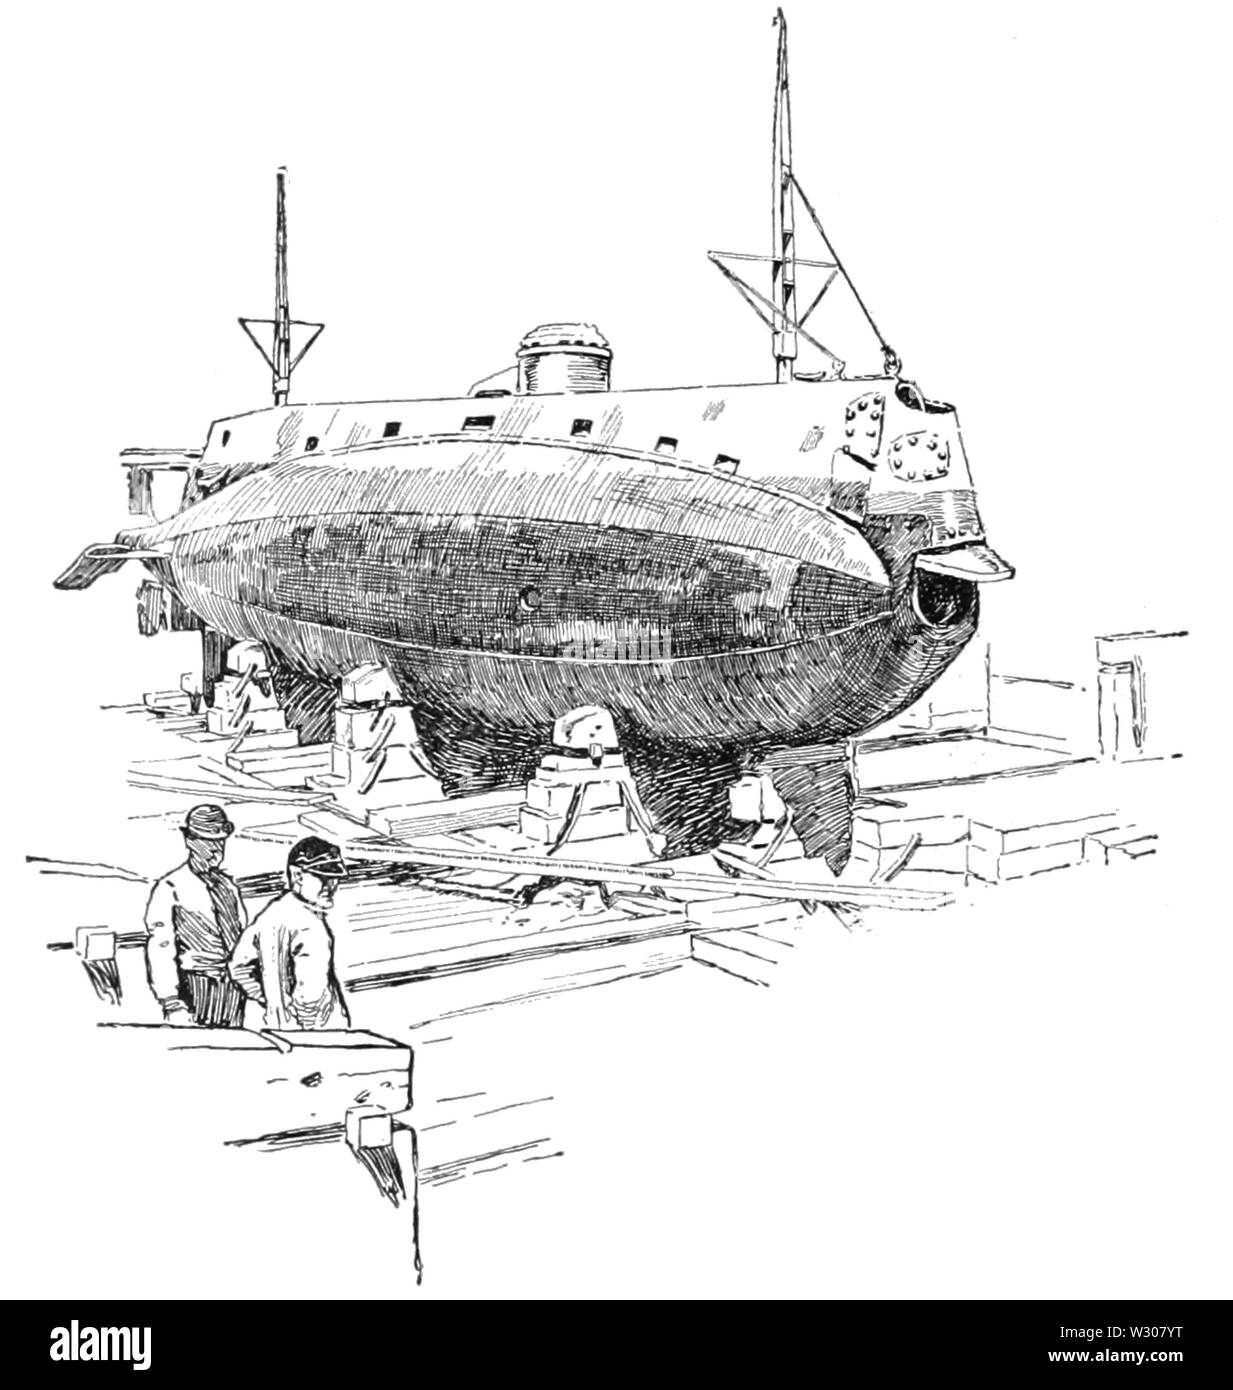 PSM V58 D172 The holland submarine in dry dock - Stock Image